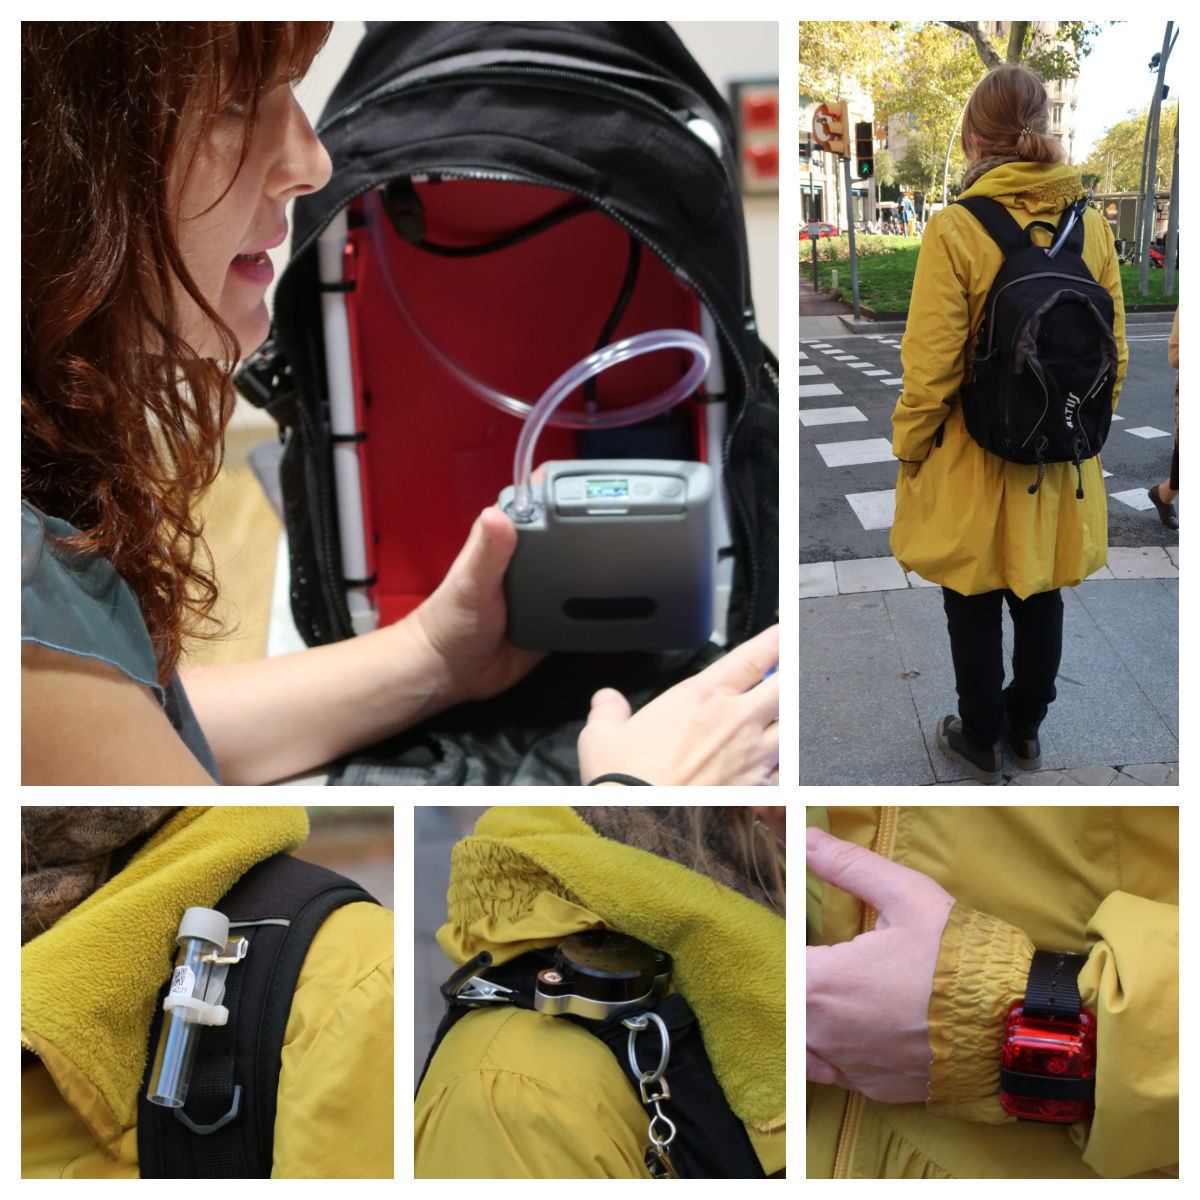 Mobile measuring devices to analyse individual exposure to air pollution.